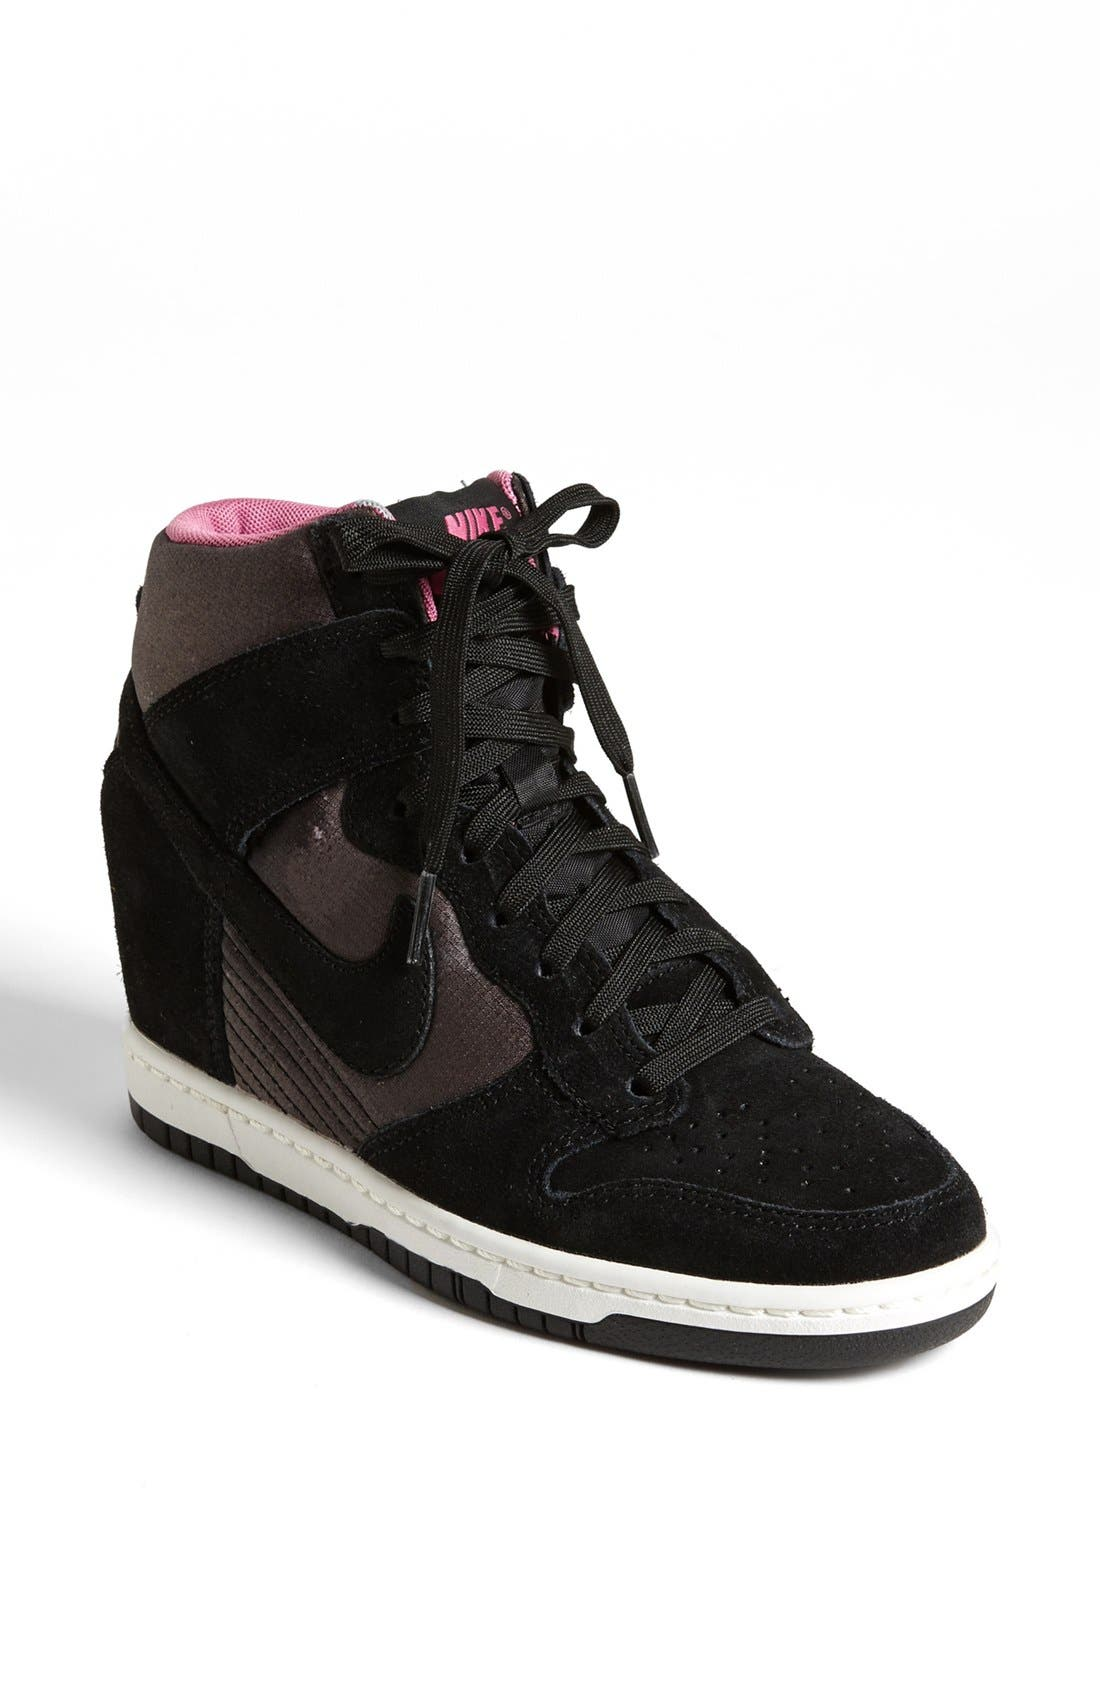 save off fb4ff 0c888 Nike Dunk Sky High Black